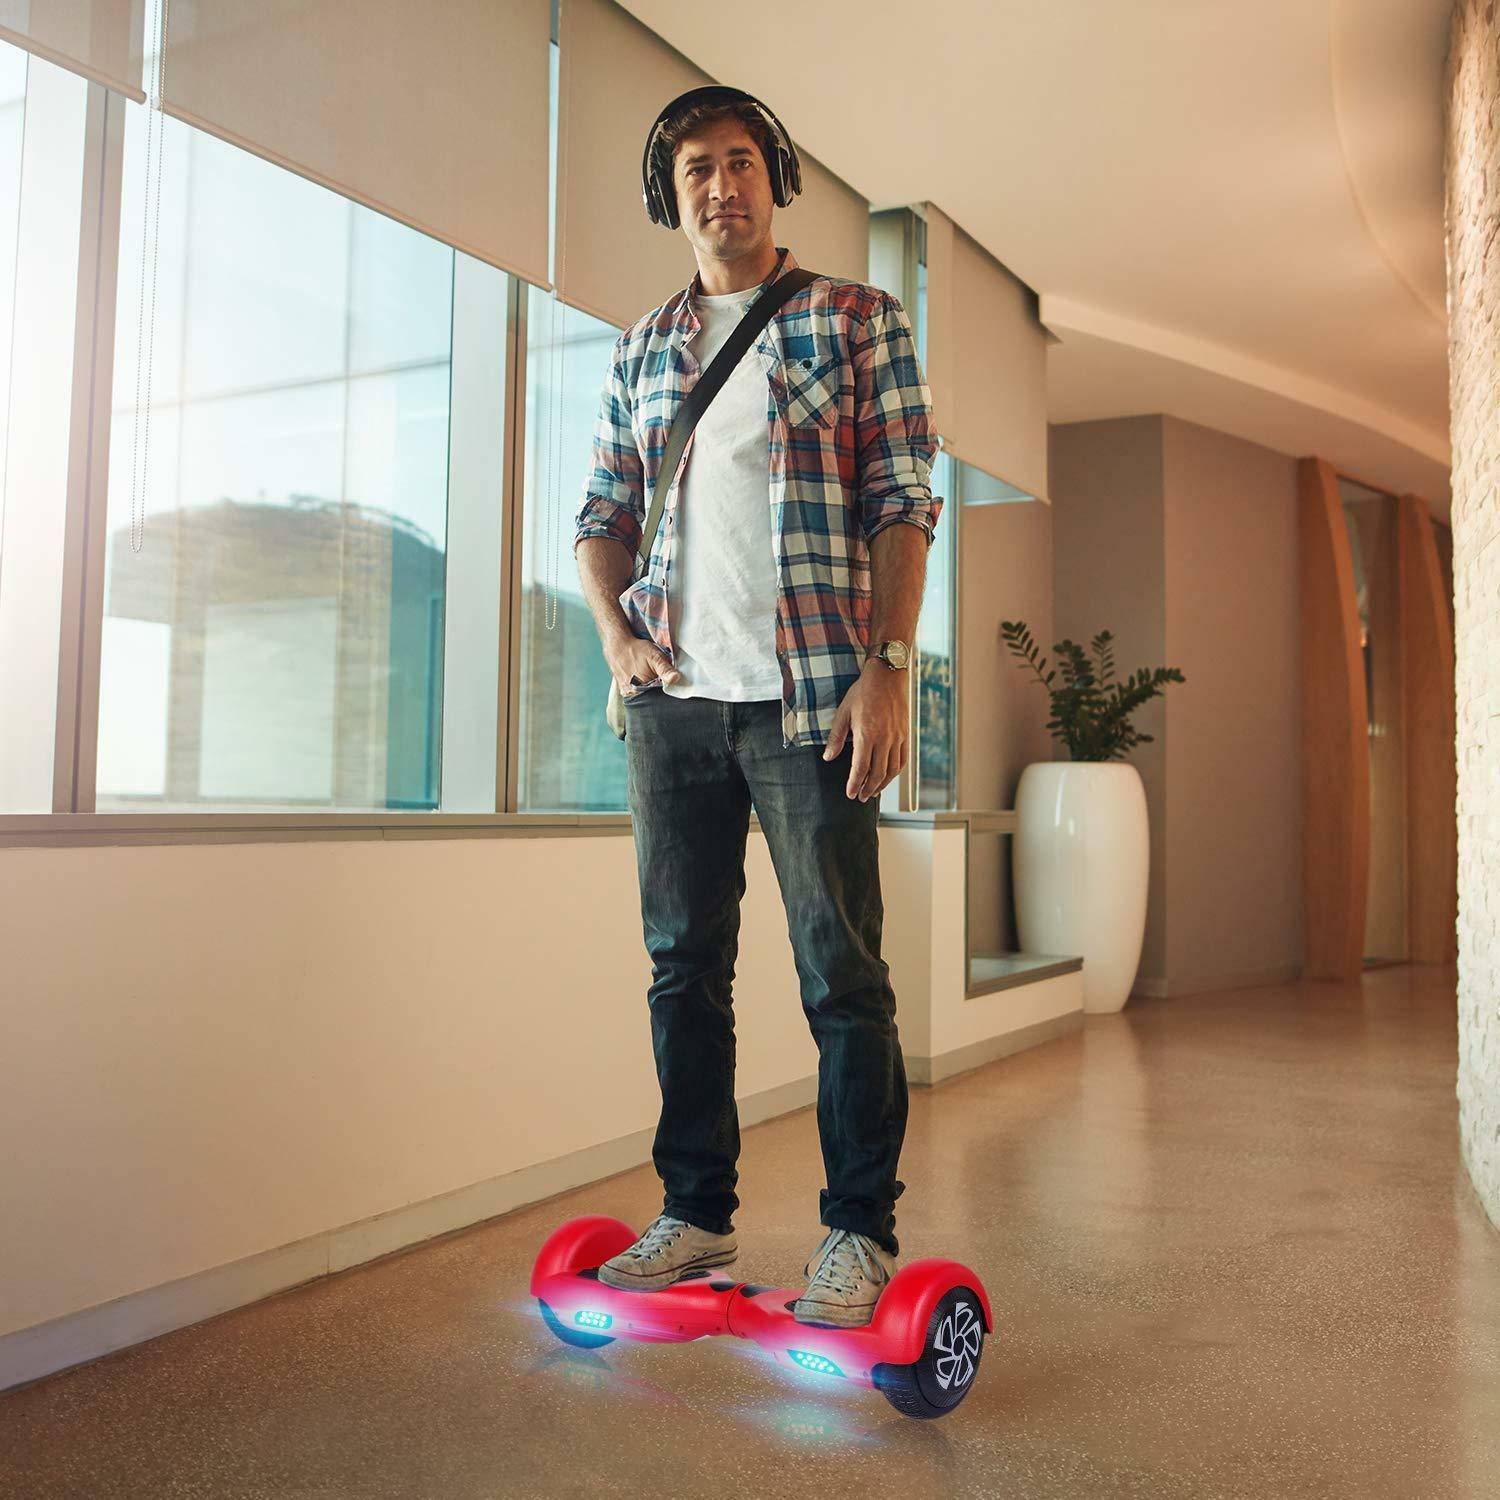 UL2272 Certified 6.5  Red Hoverboard Self Balancing Smart LED Electric Scooter